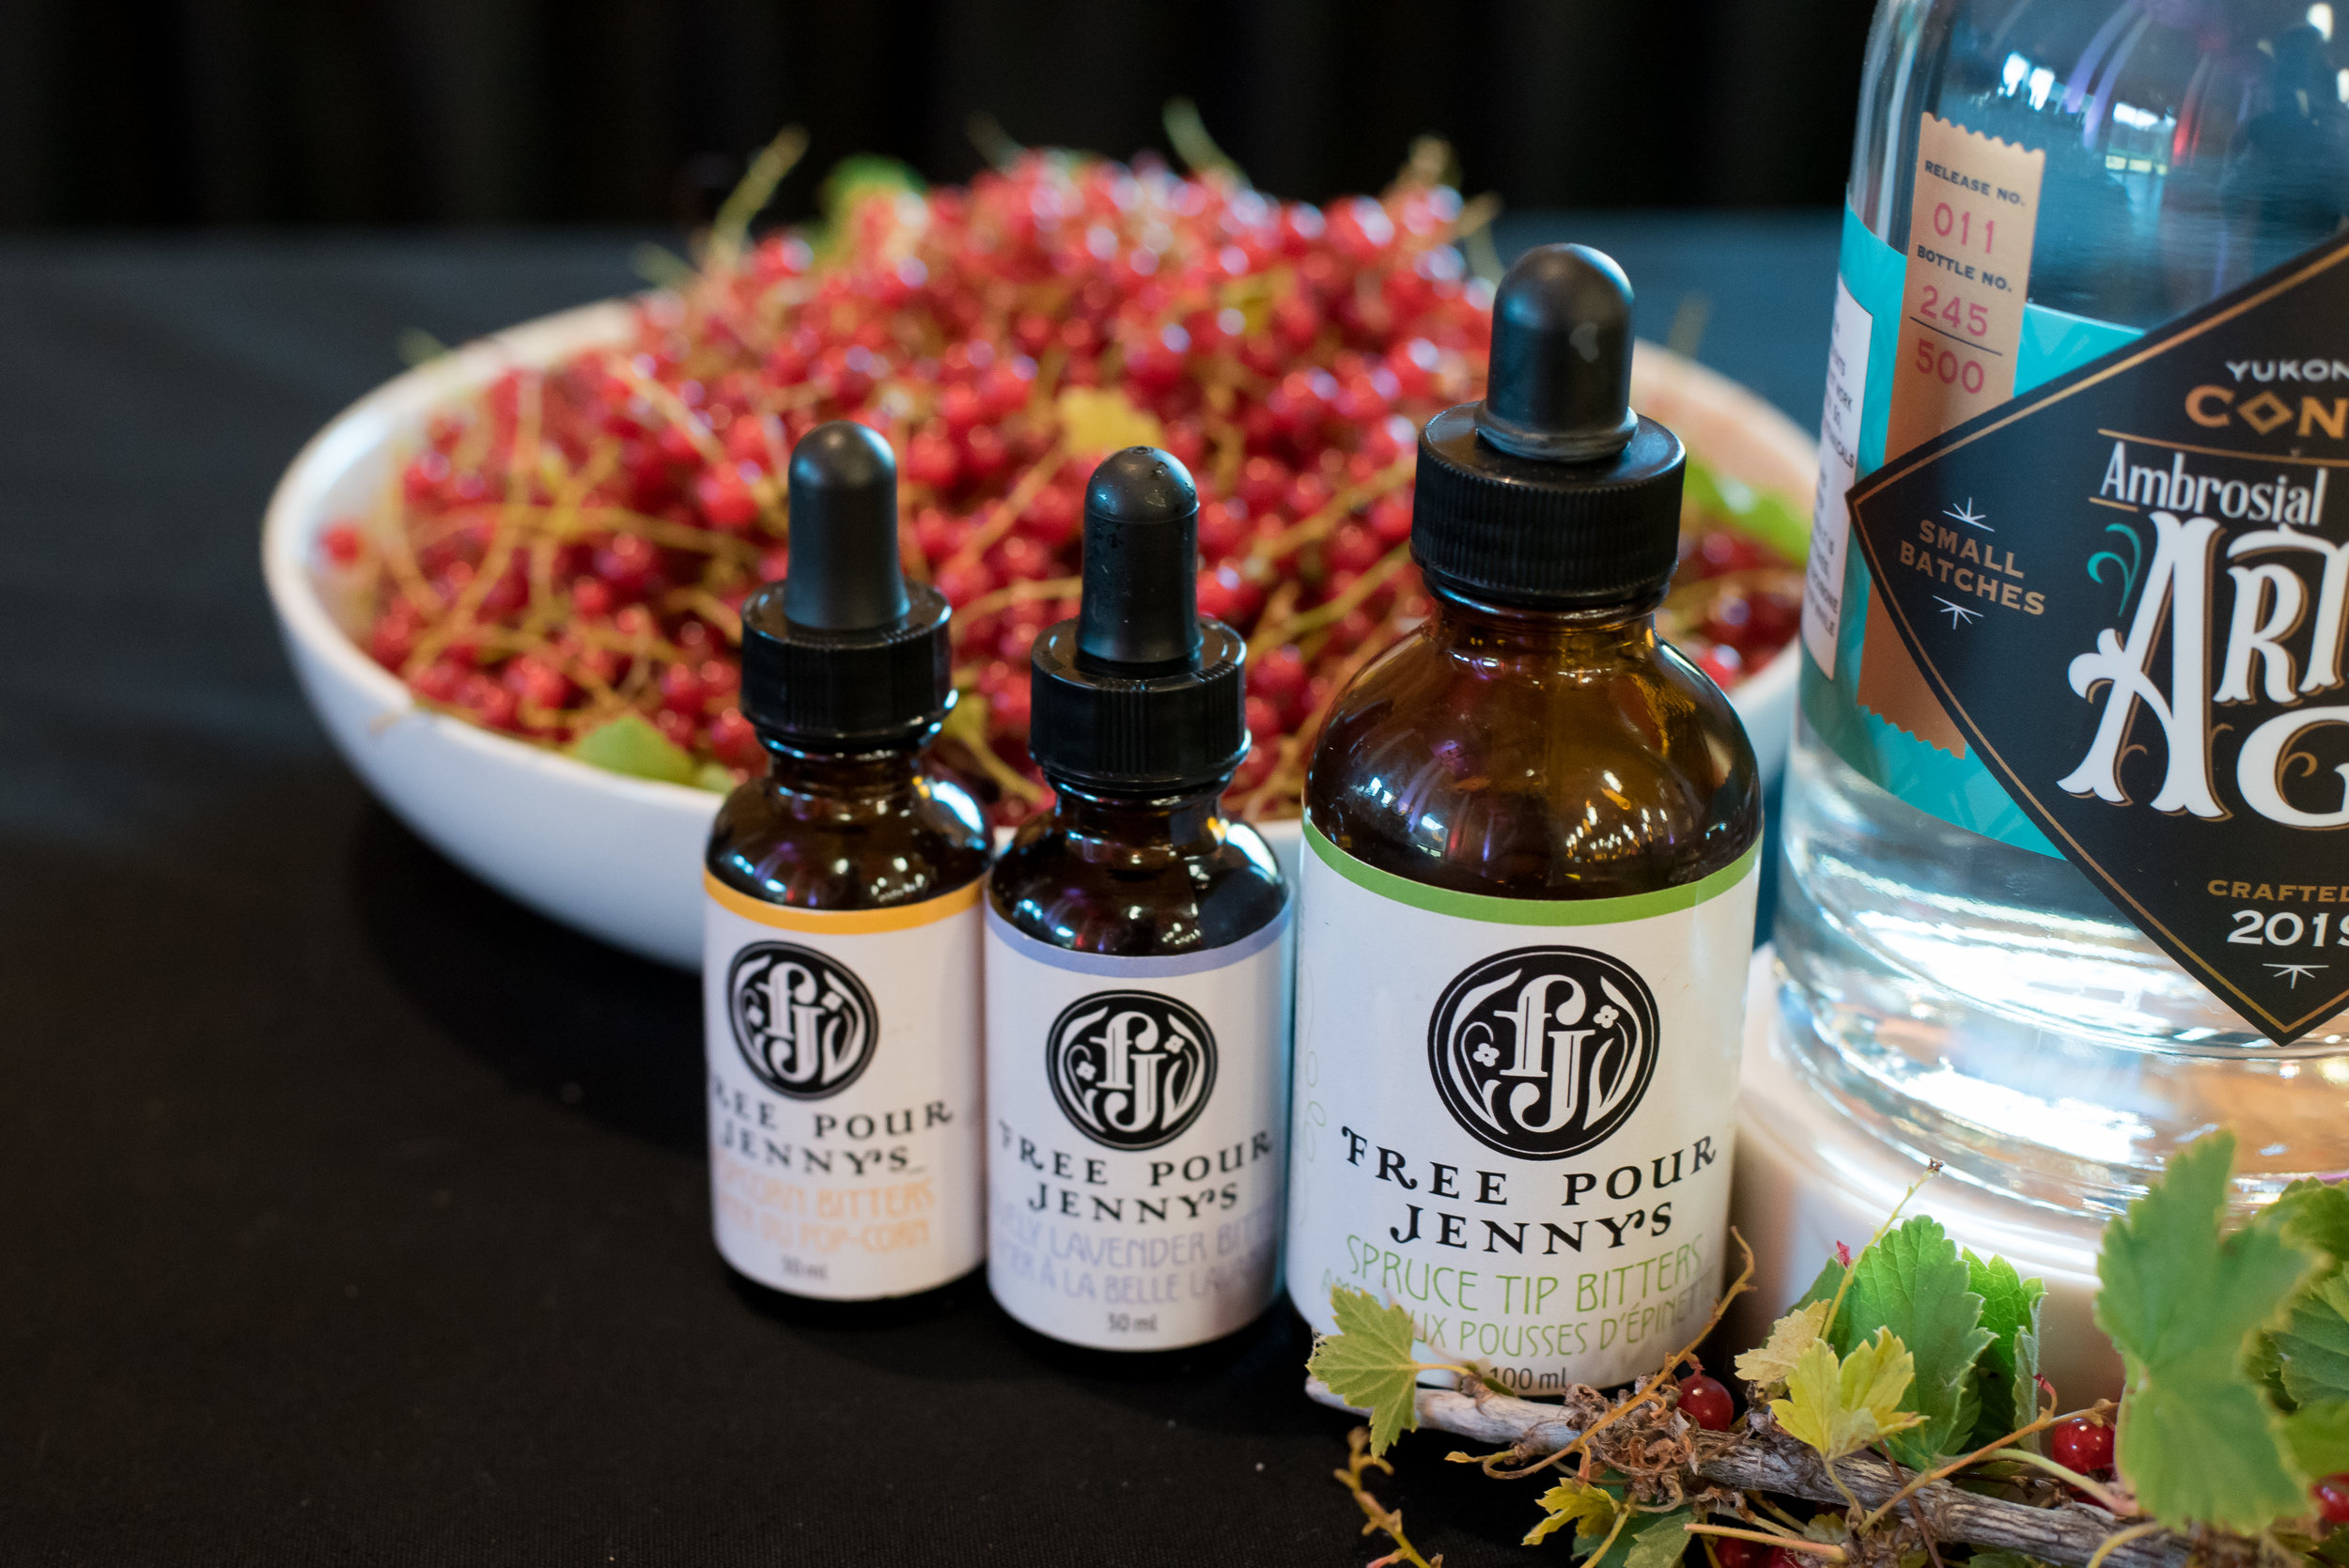 Free Pour Jenny's bitters on display at the Yukon Culinary Festival's Feast & Forage event, August 2019